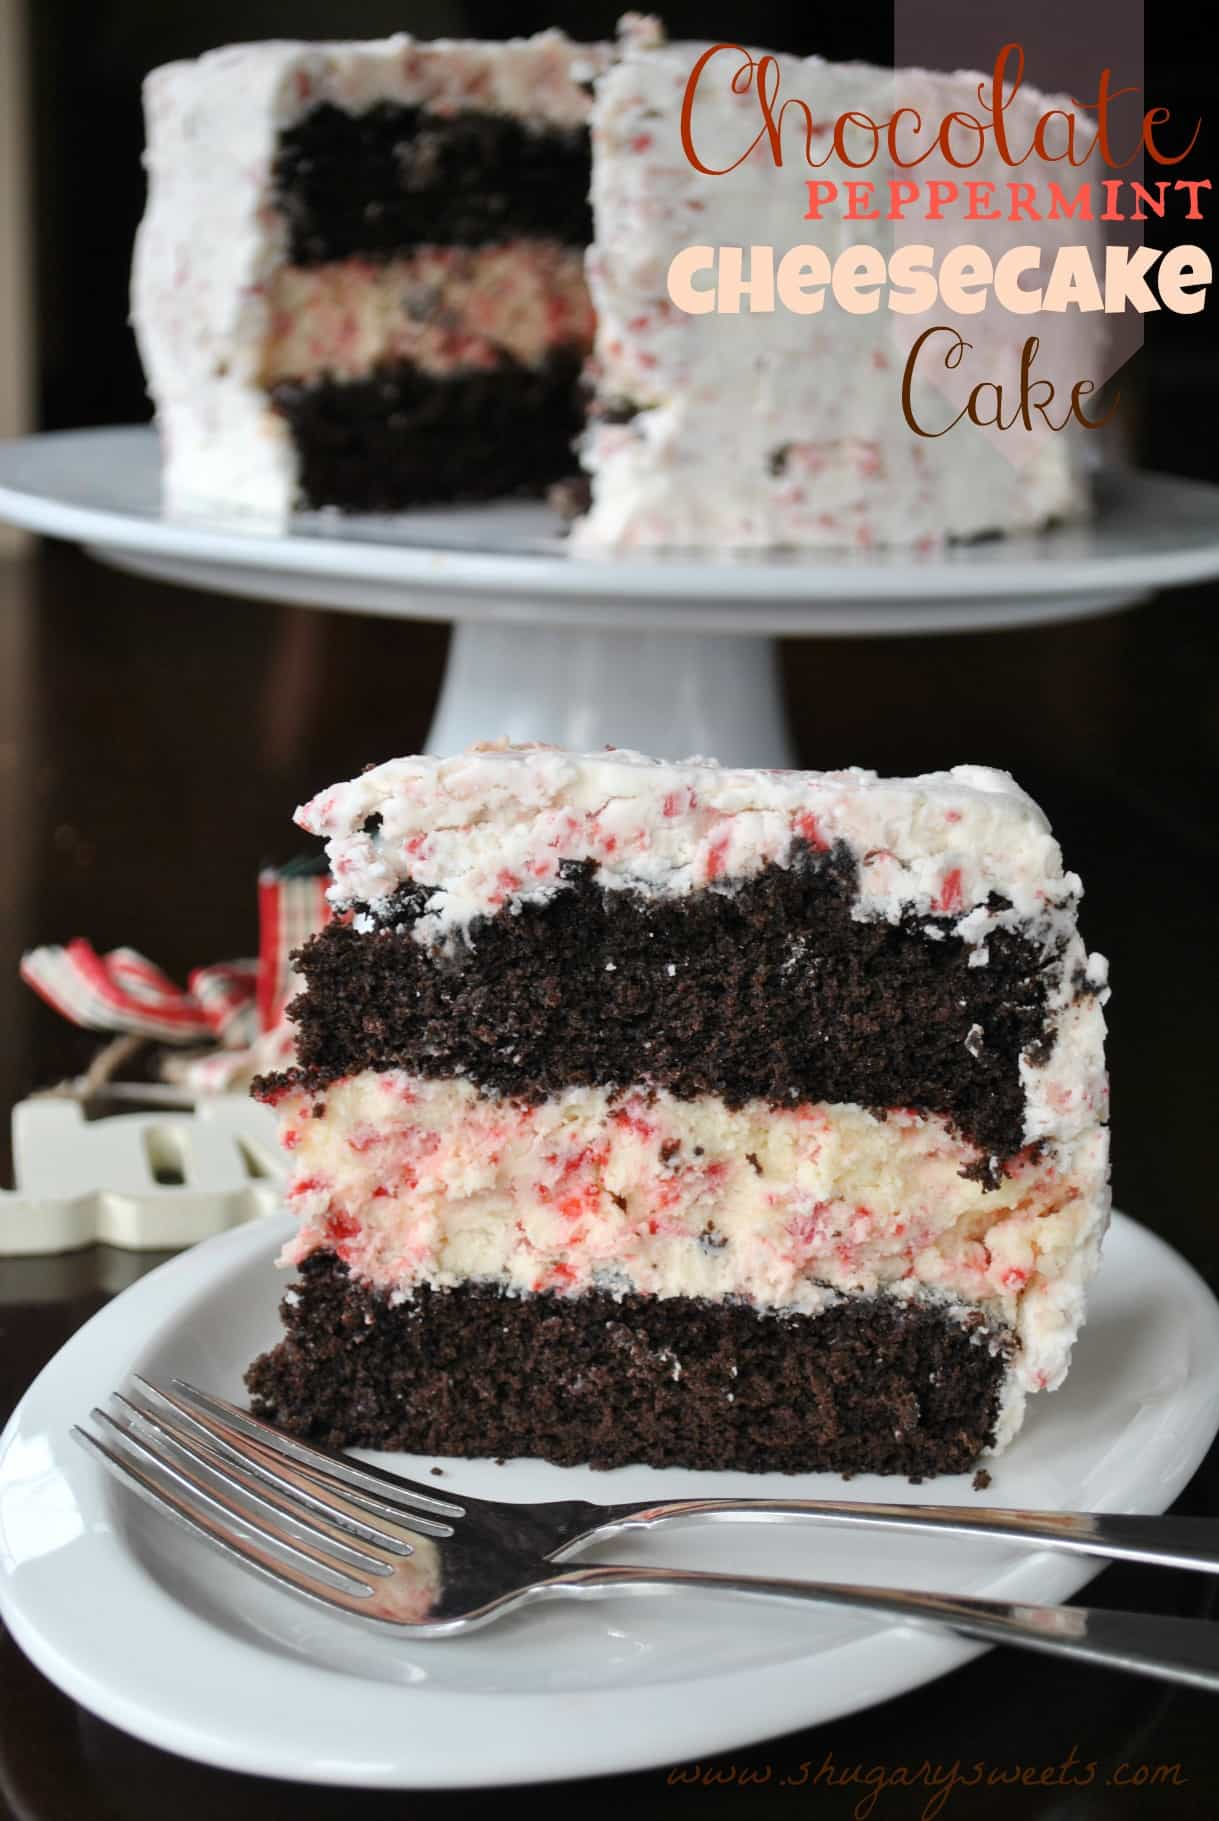 Chocolate Peppermint Cheesecake Cake - Shugary Sweets